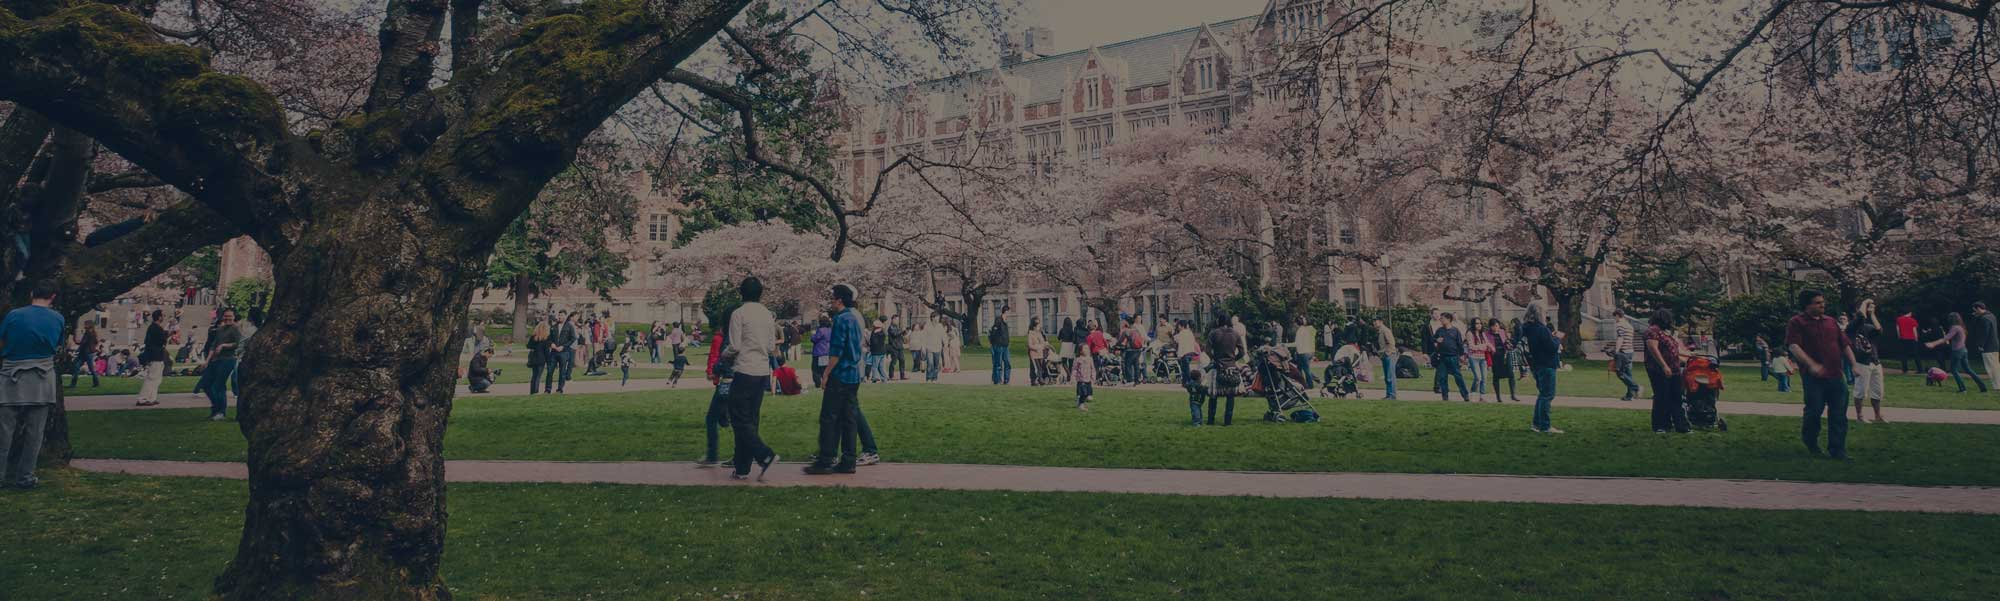 5 Campus Wi-Fi Trends Every College CIO Needs to Follow